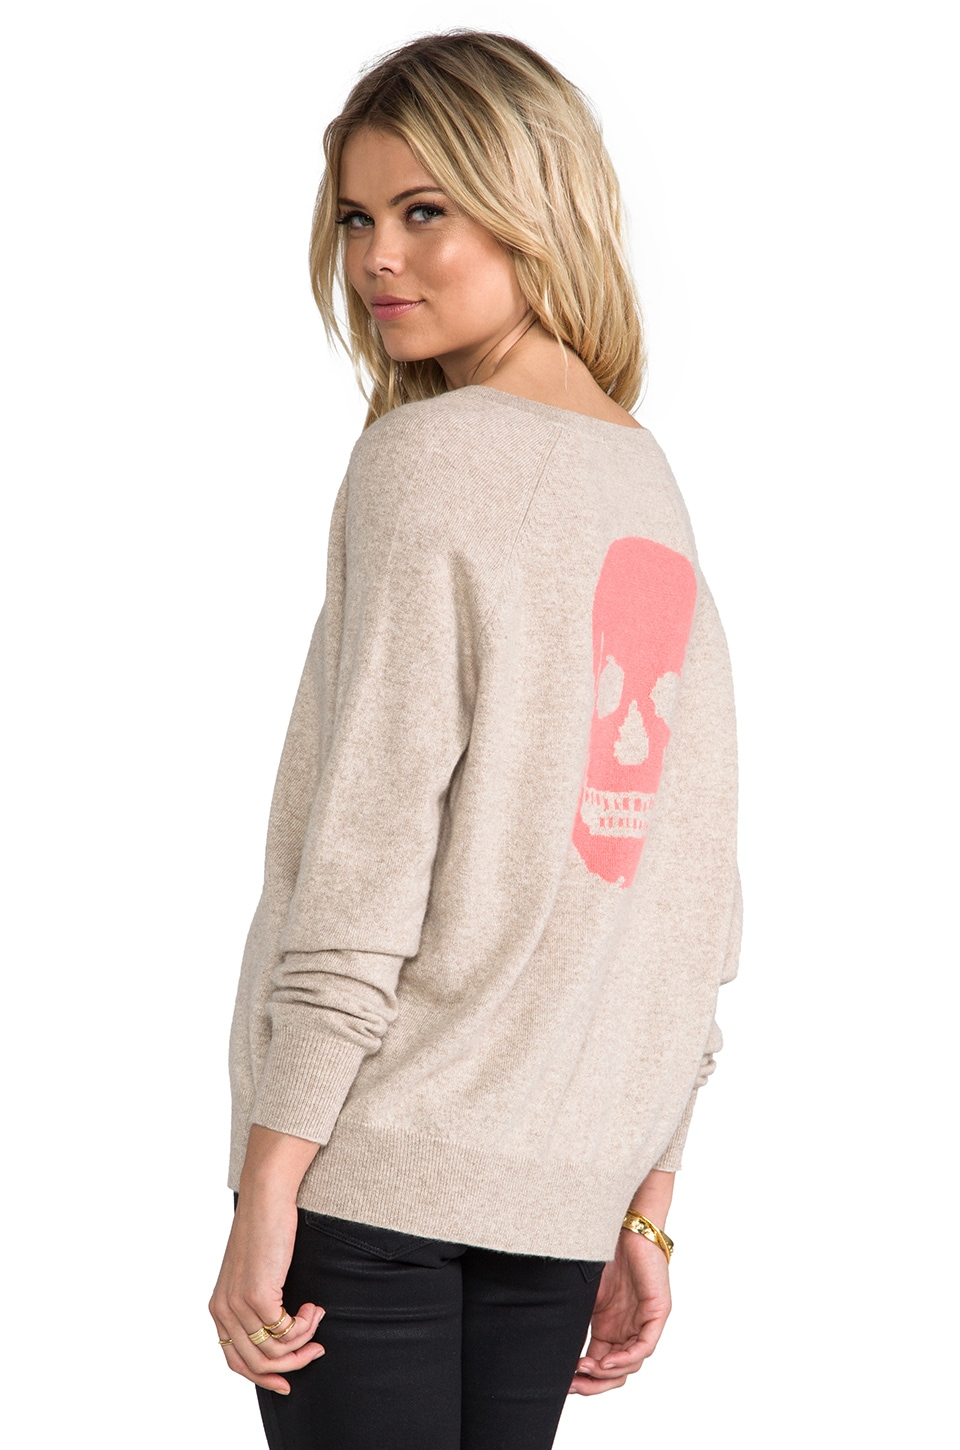 360 Sweater Luther Skull Sweater in Oatmeal & Salmon